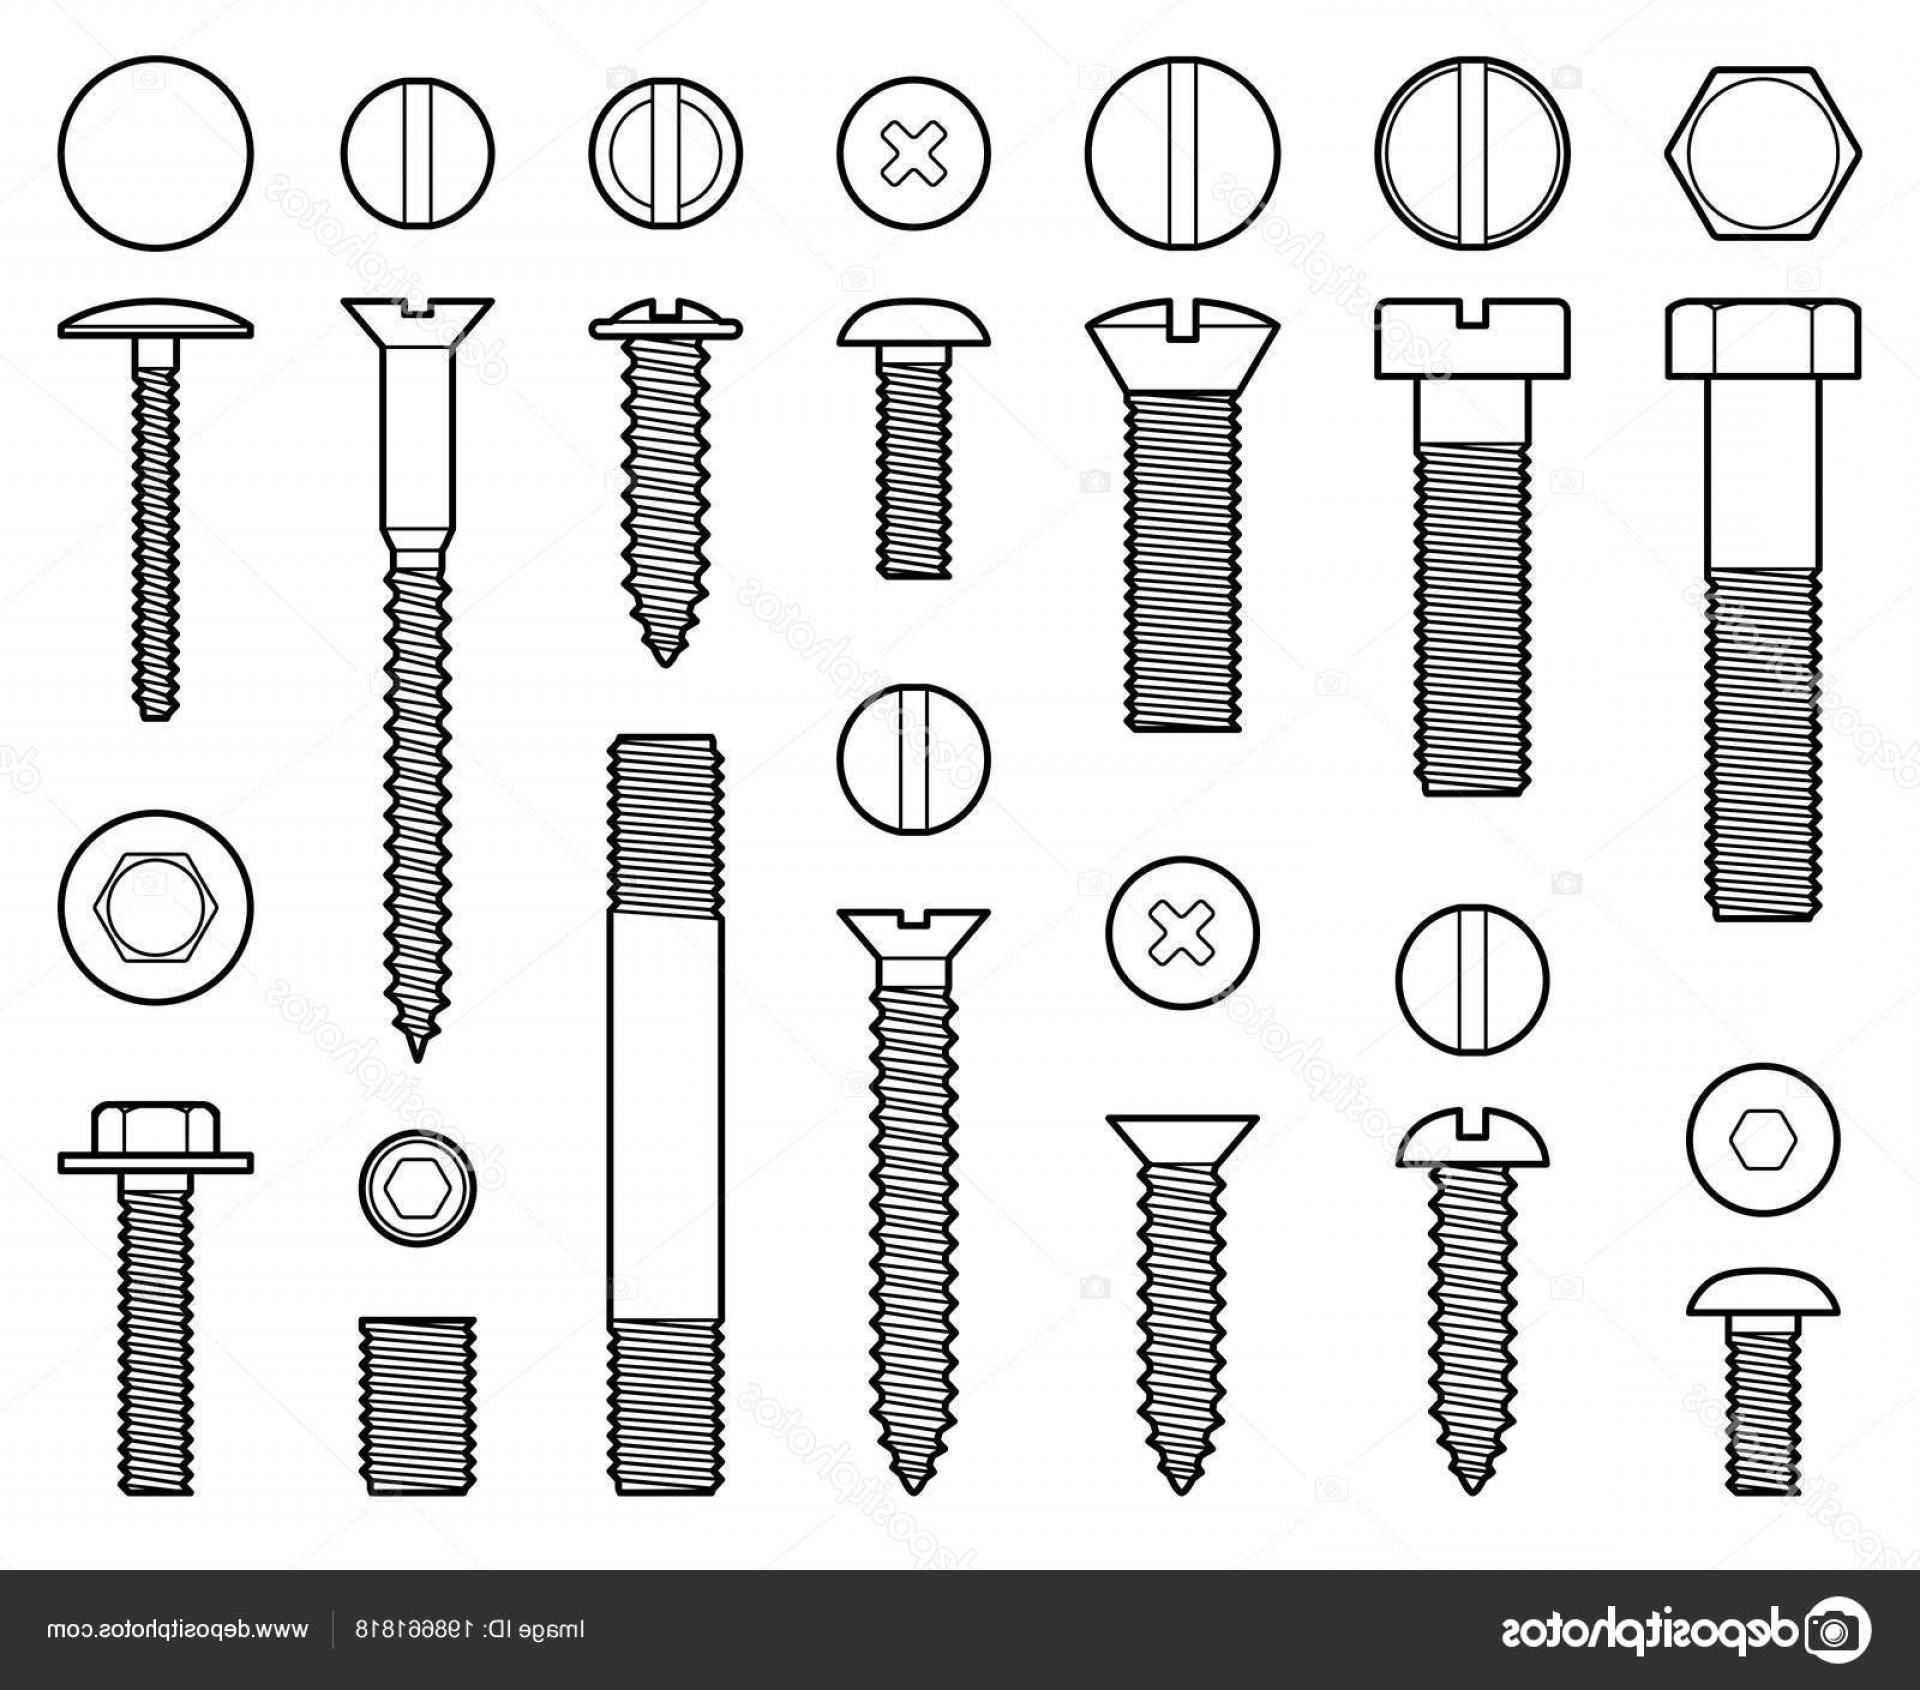 Screw Vector Black: Stock Illustration Industrial Screws Bolts Nuts And